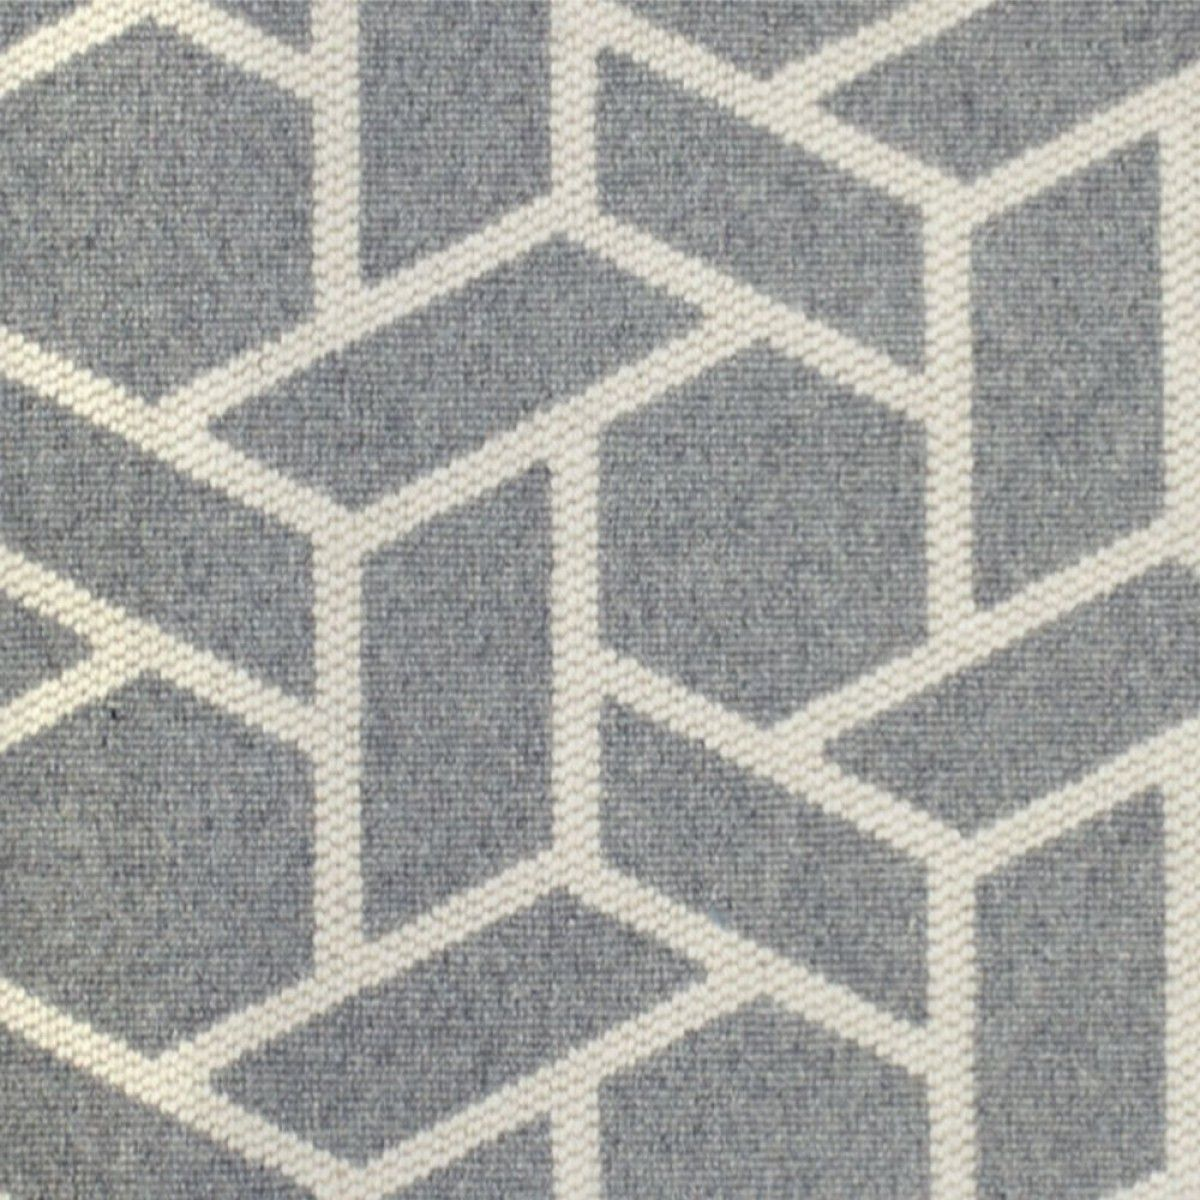 Runner Possibility Stark Exclusives Brix Desert Night Elte With Images Geometric Carpet Rugs On Carpet Where To Buy Carpet